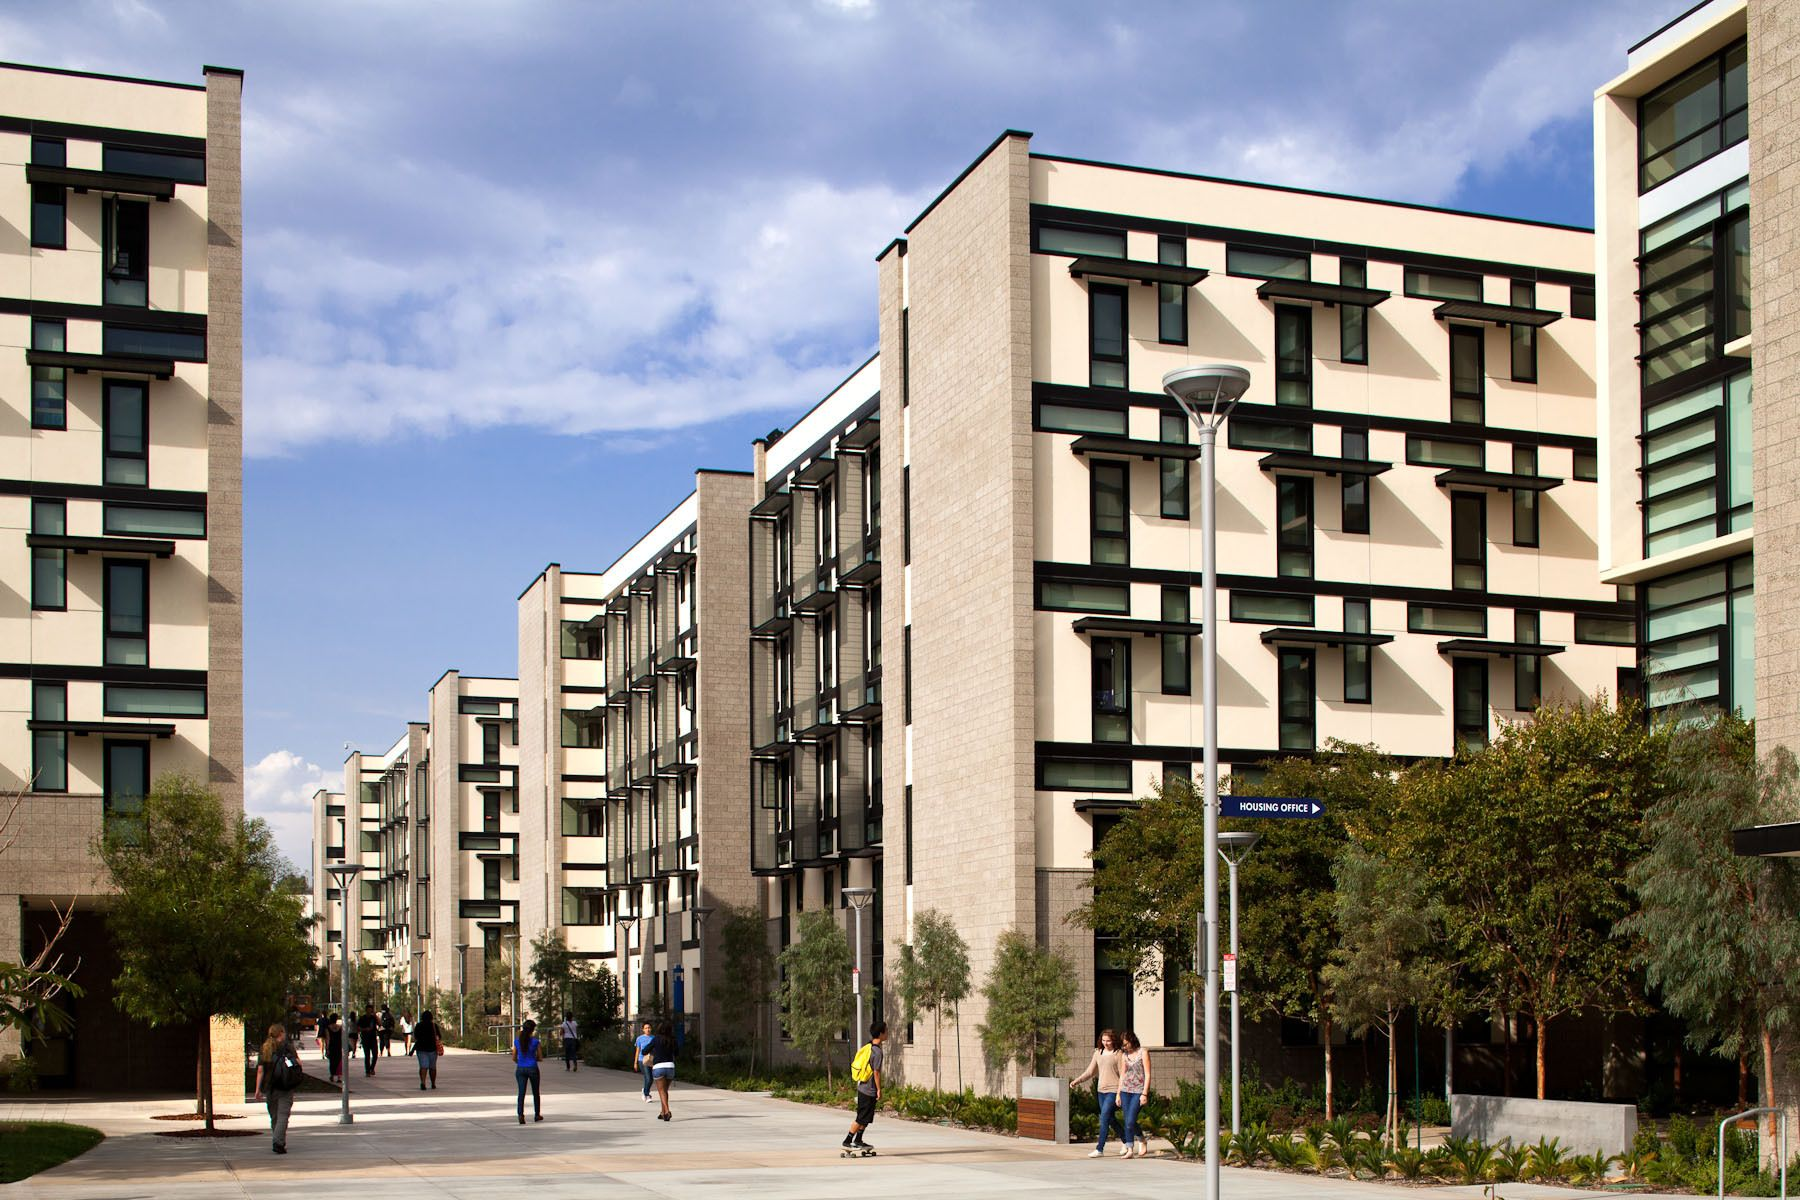 CSU Fullerton Student Housing